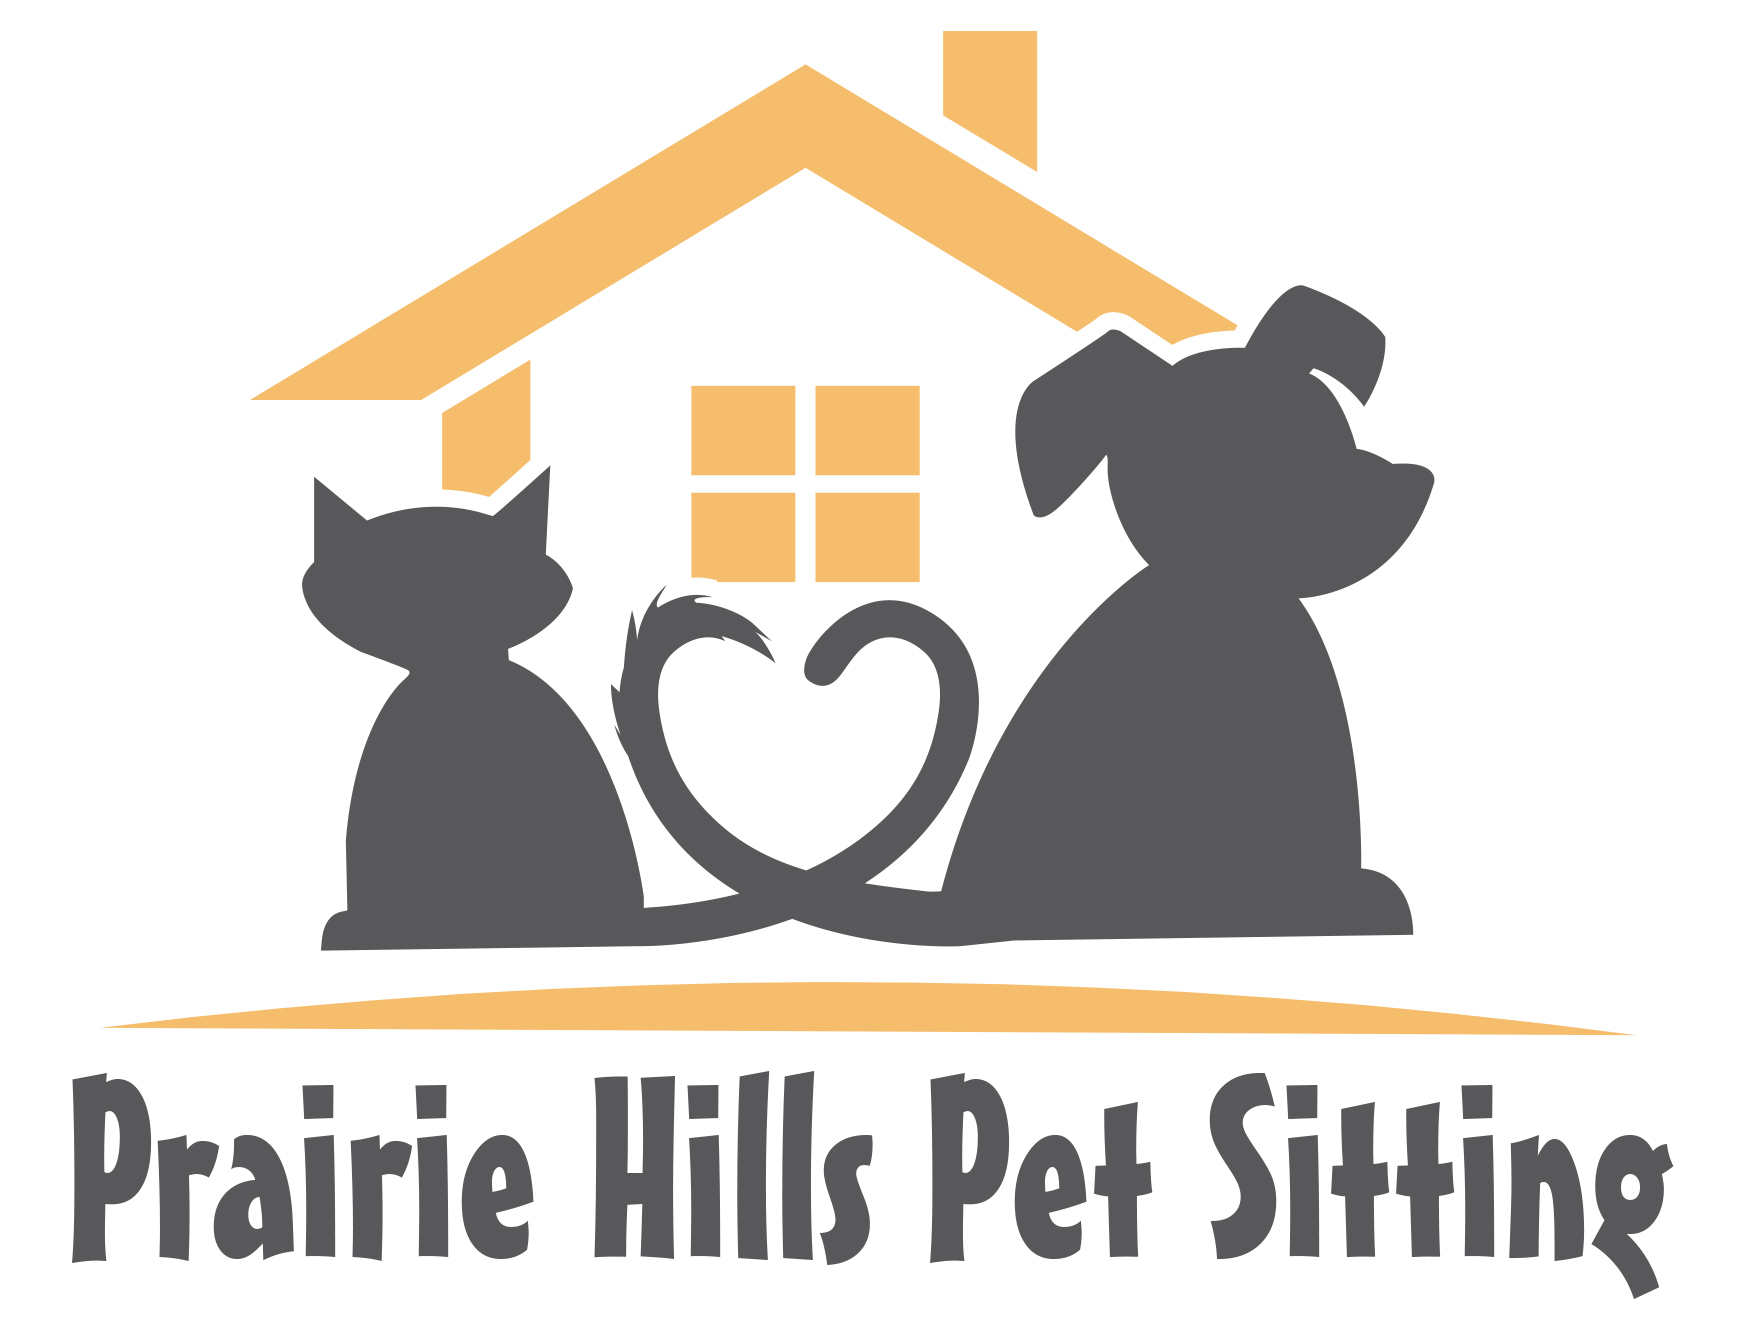 Prairie Hills Pet Sitting